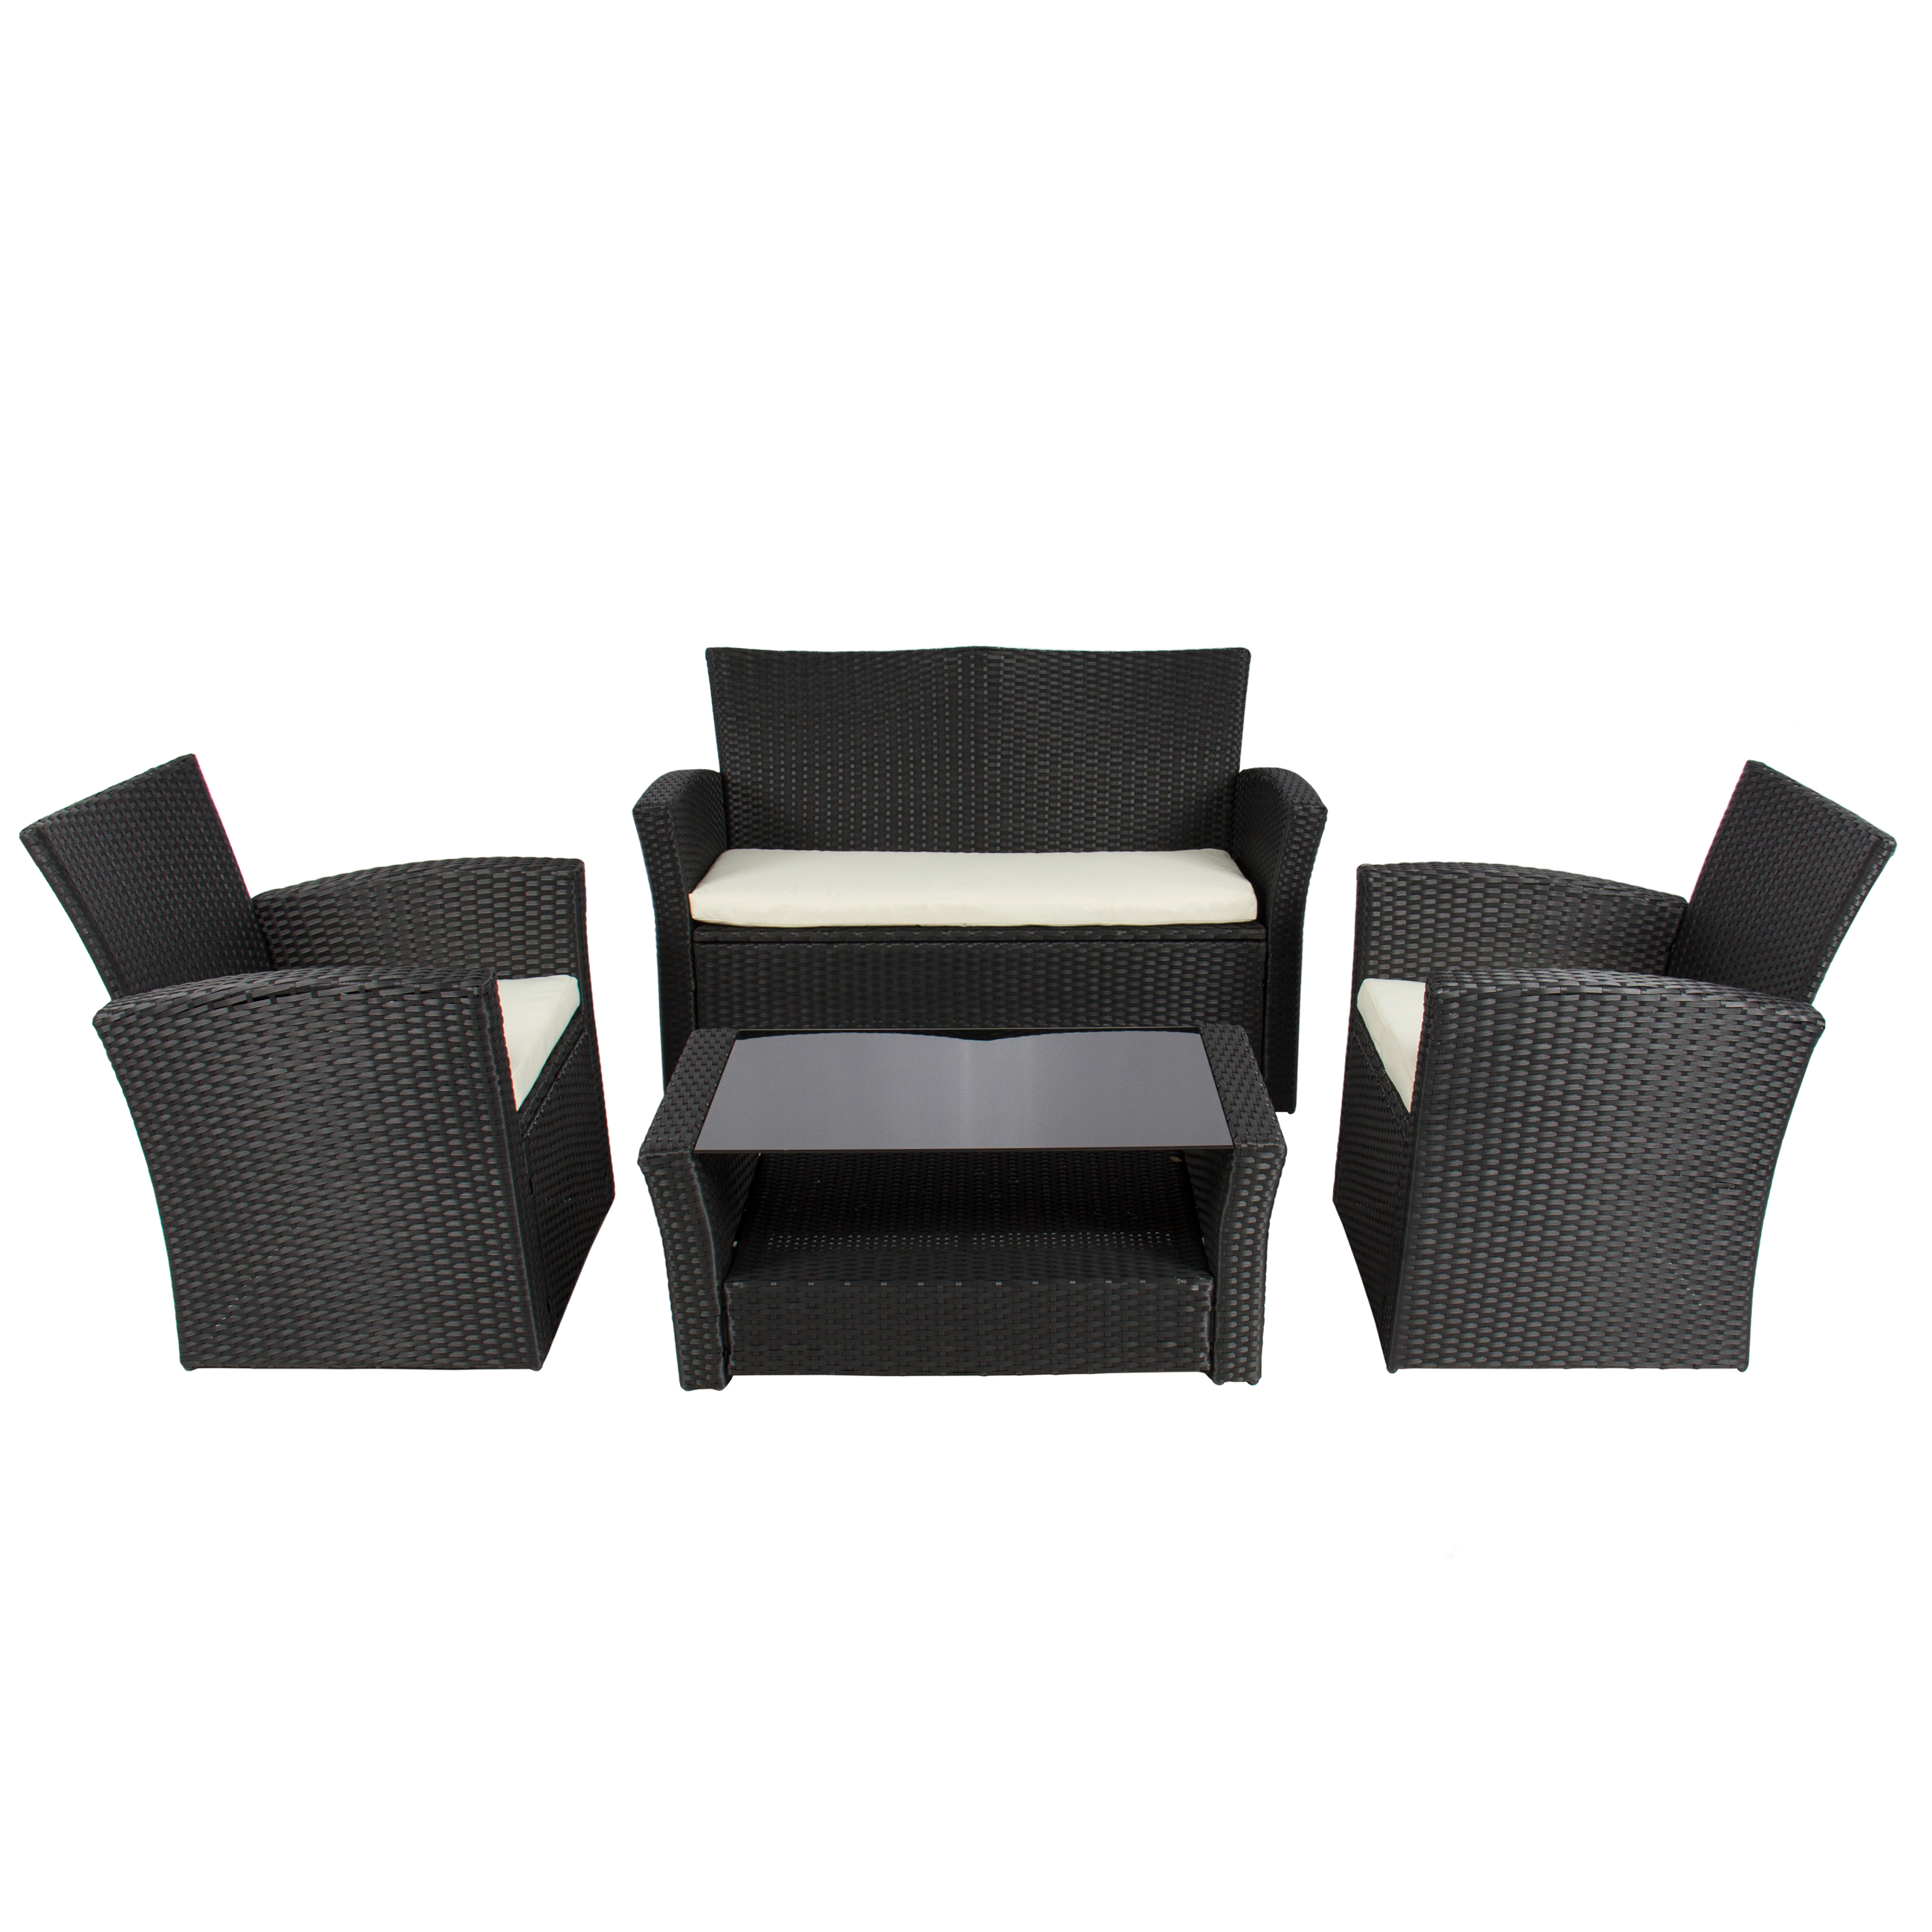 Outdoor Sofa Rattan 4pc Outdoor Patio Garden Furniture Wicker Rattan Sofa Set Black